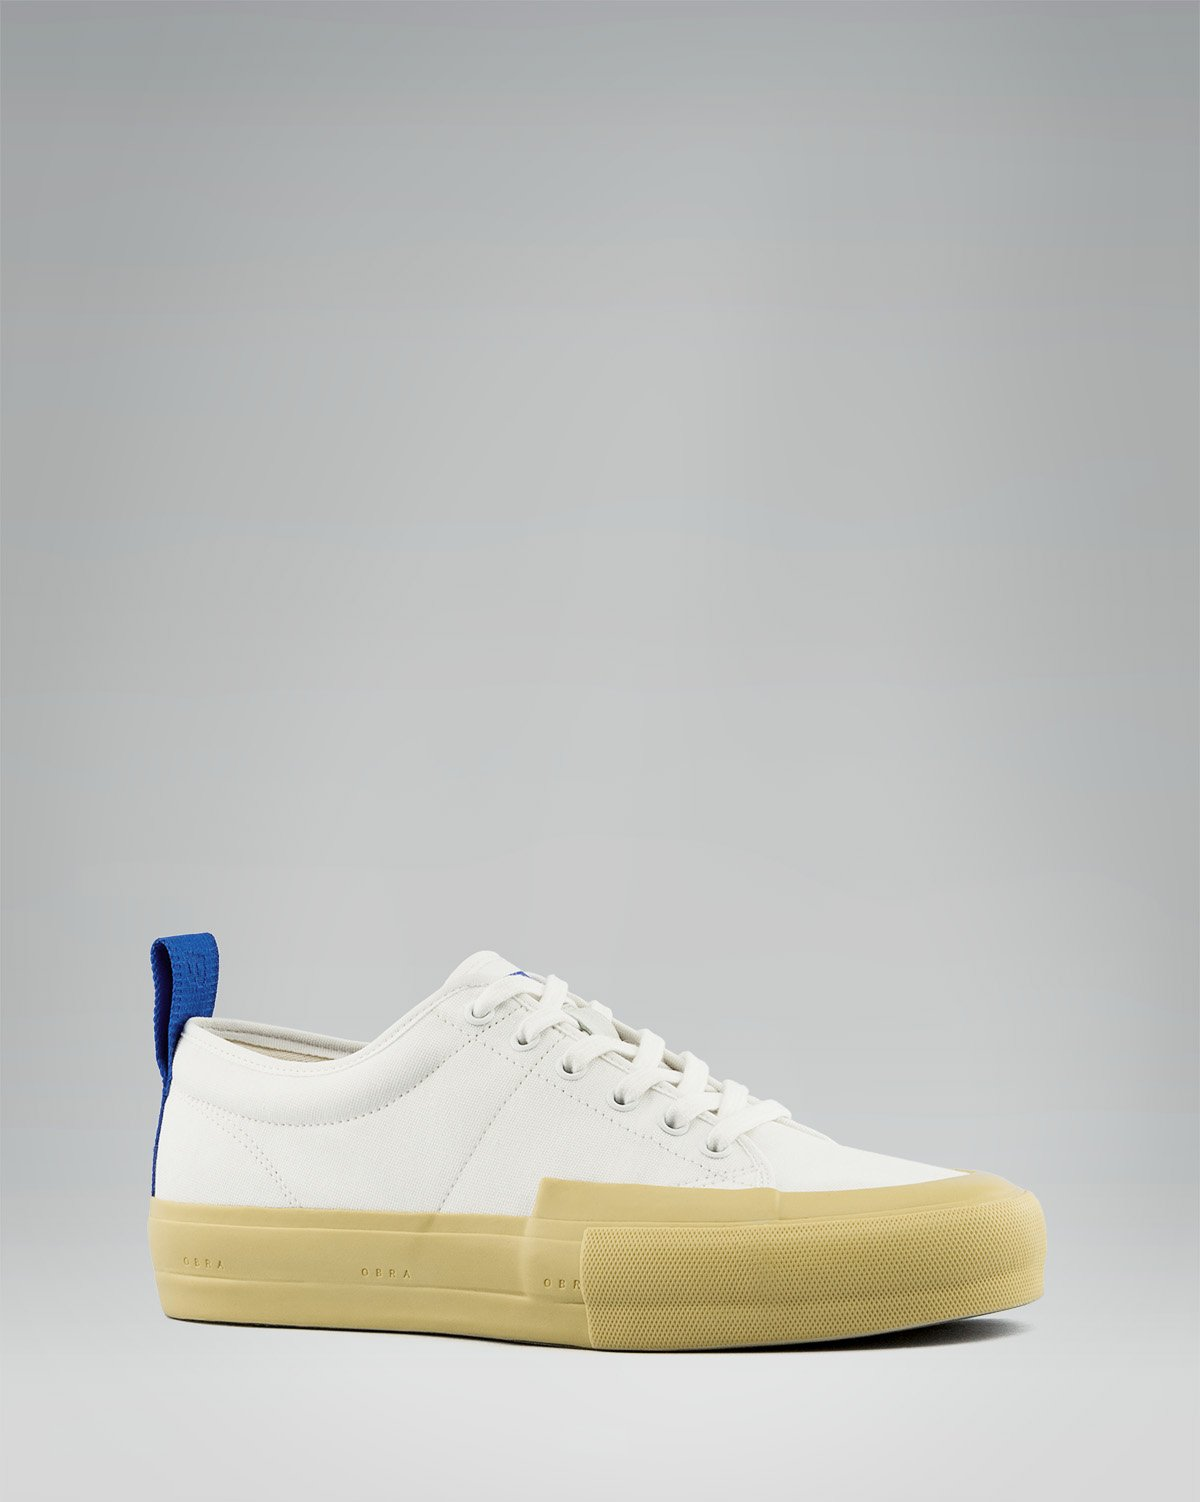 240 CANVAS LOW WRAP TOE<br />White/Sand/OBRA Blue